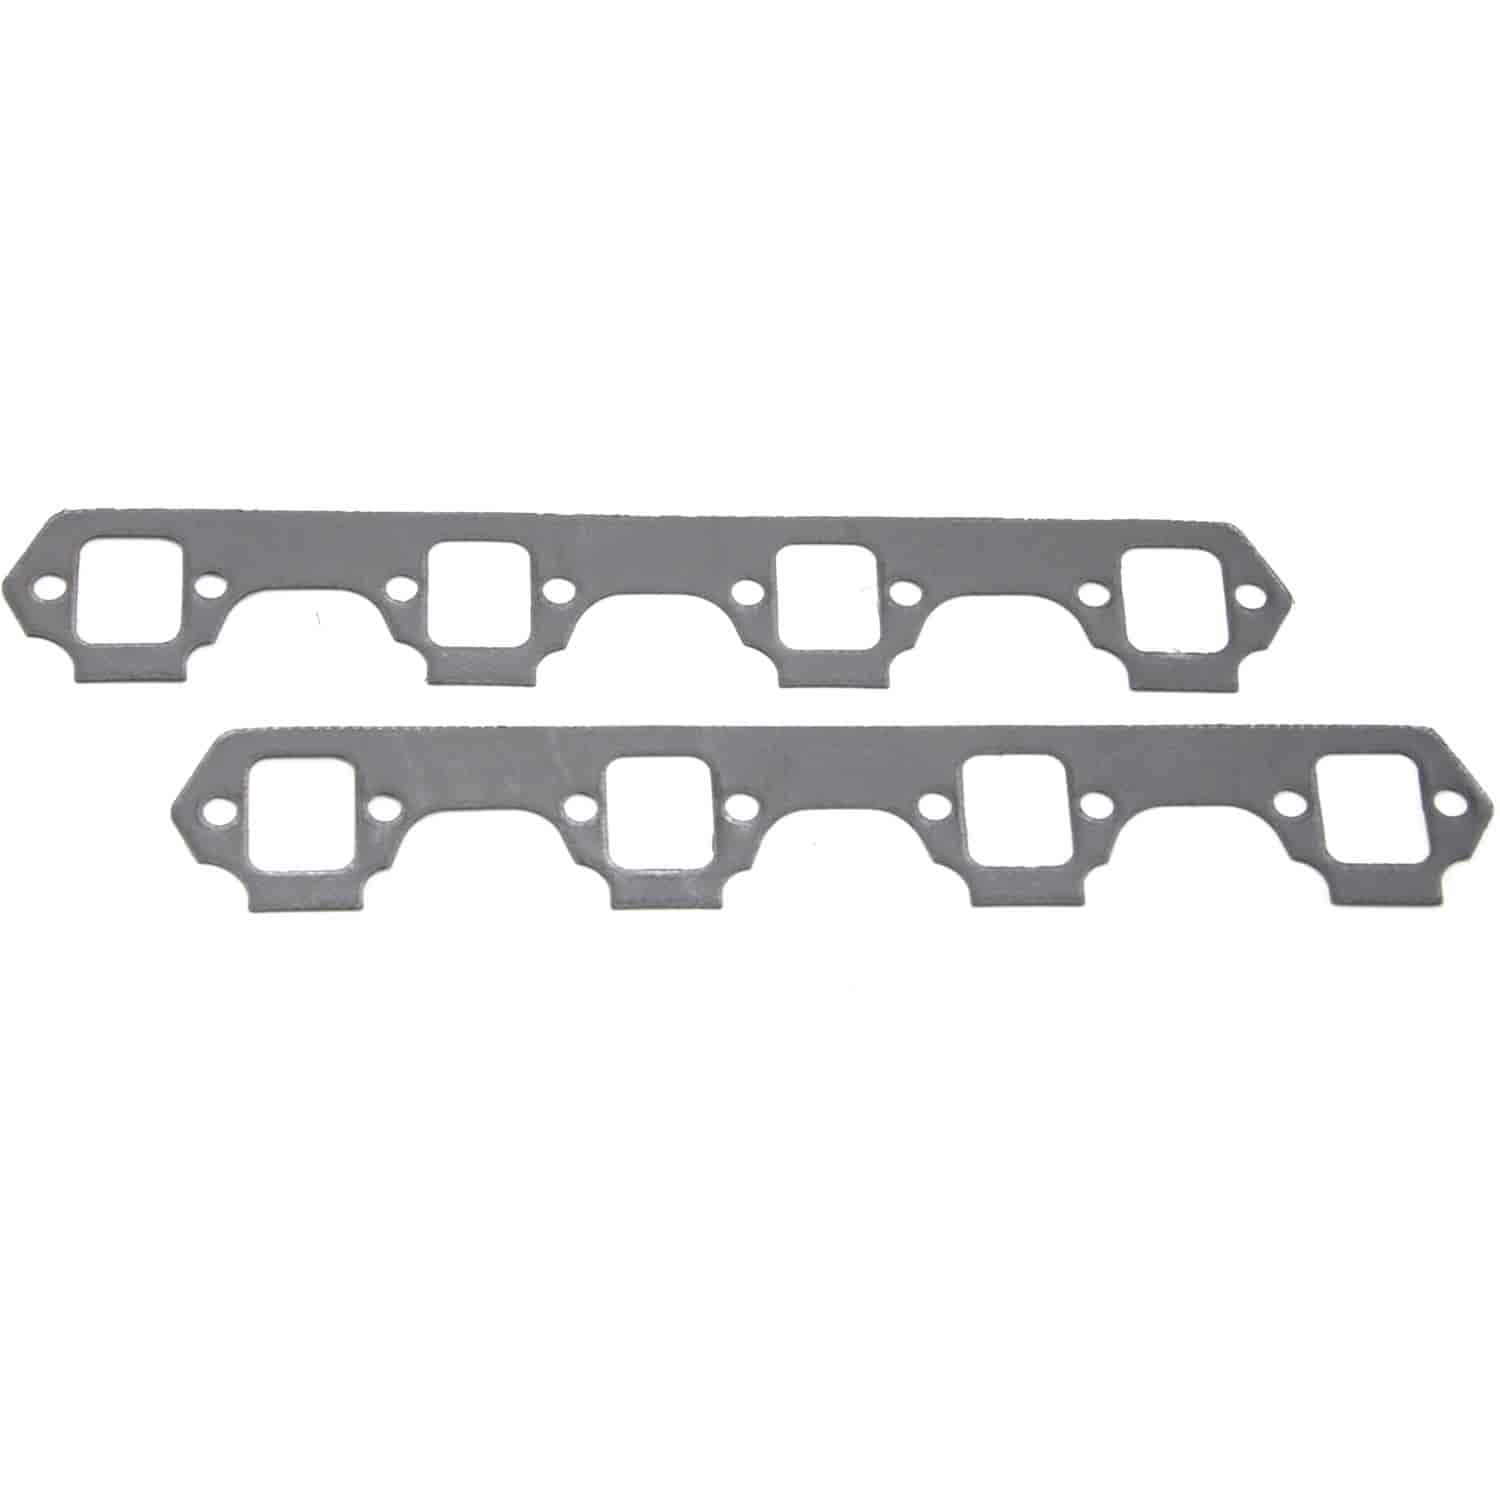 Patriot Exhaust H7518 - Patriot Exhaust Header Flange Gaskets